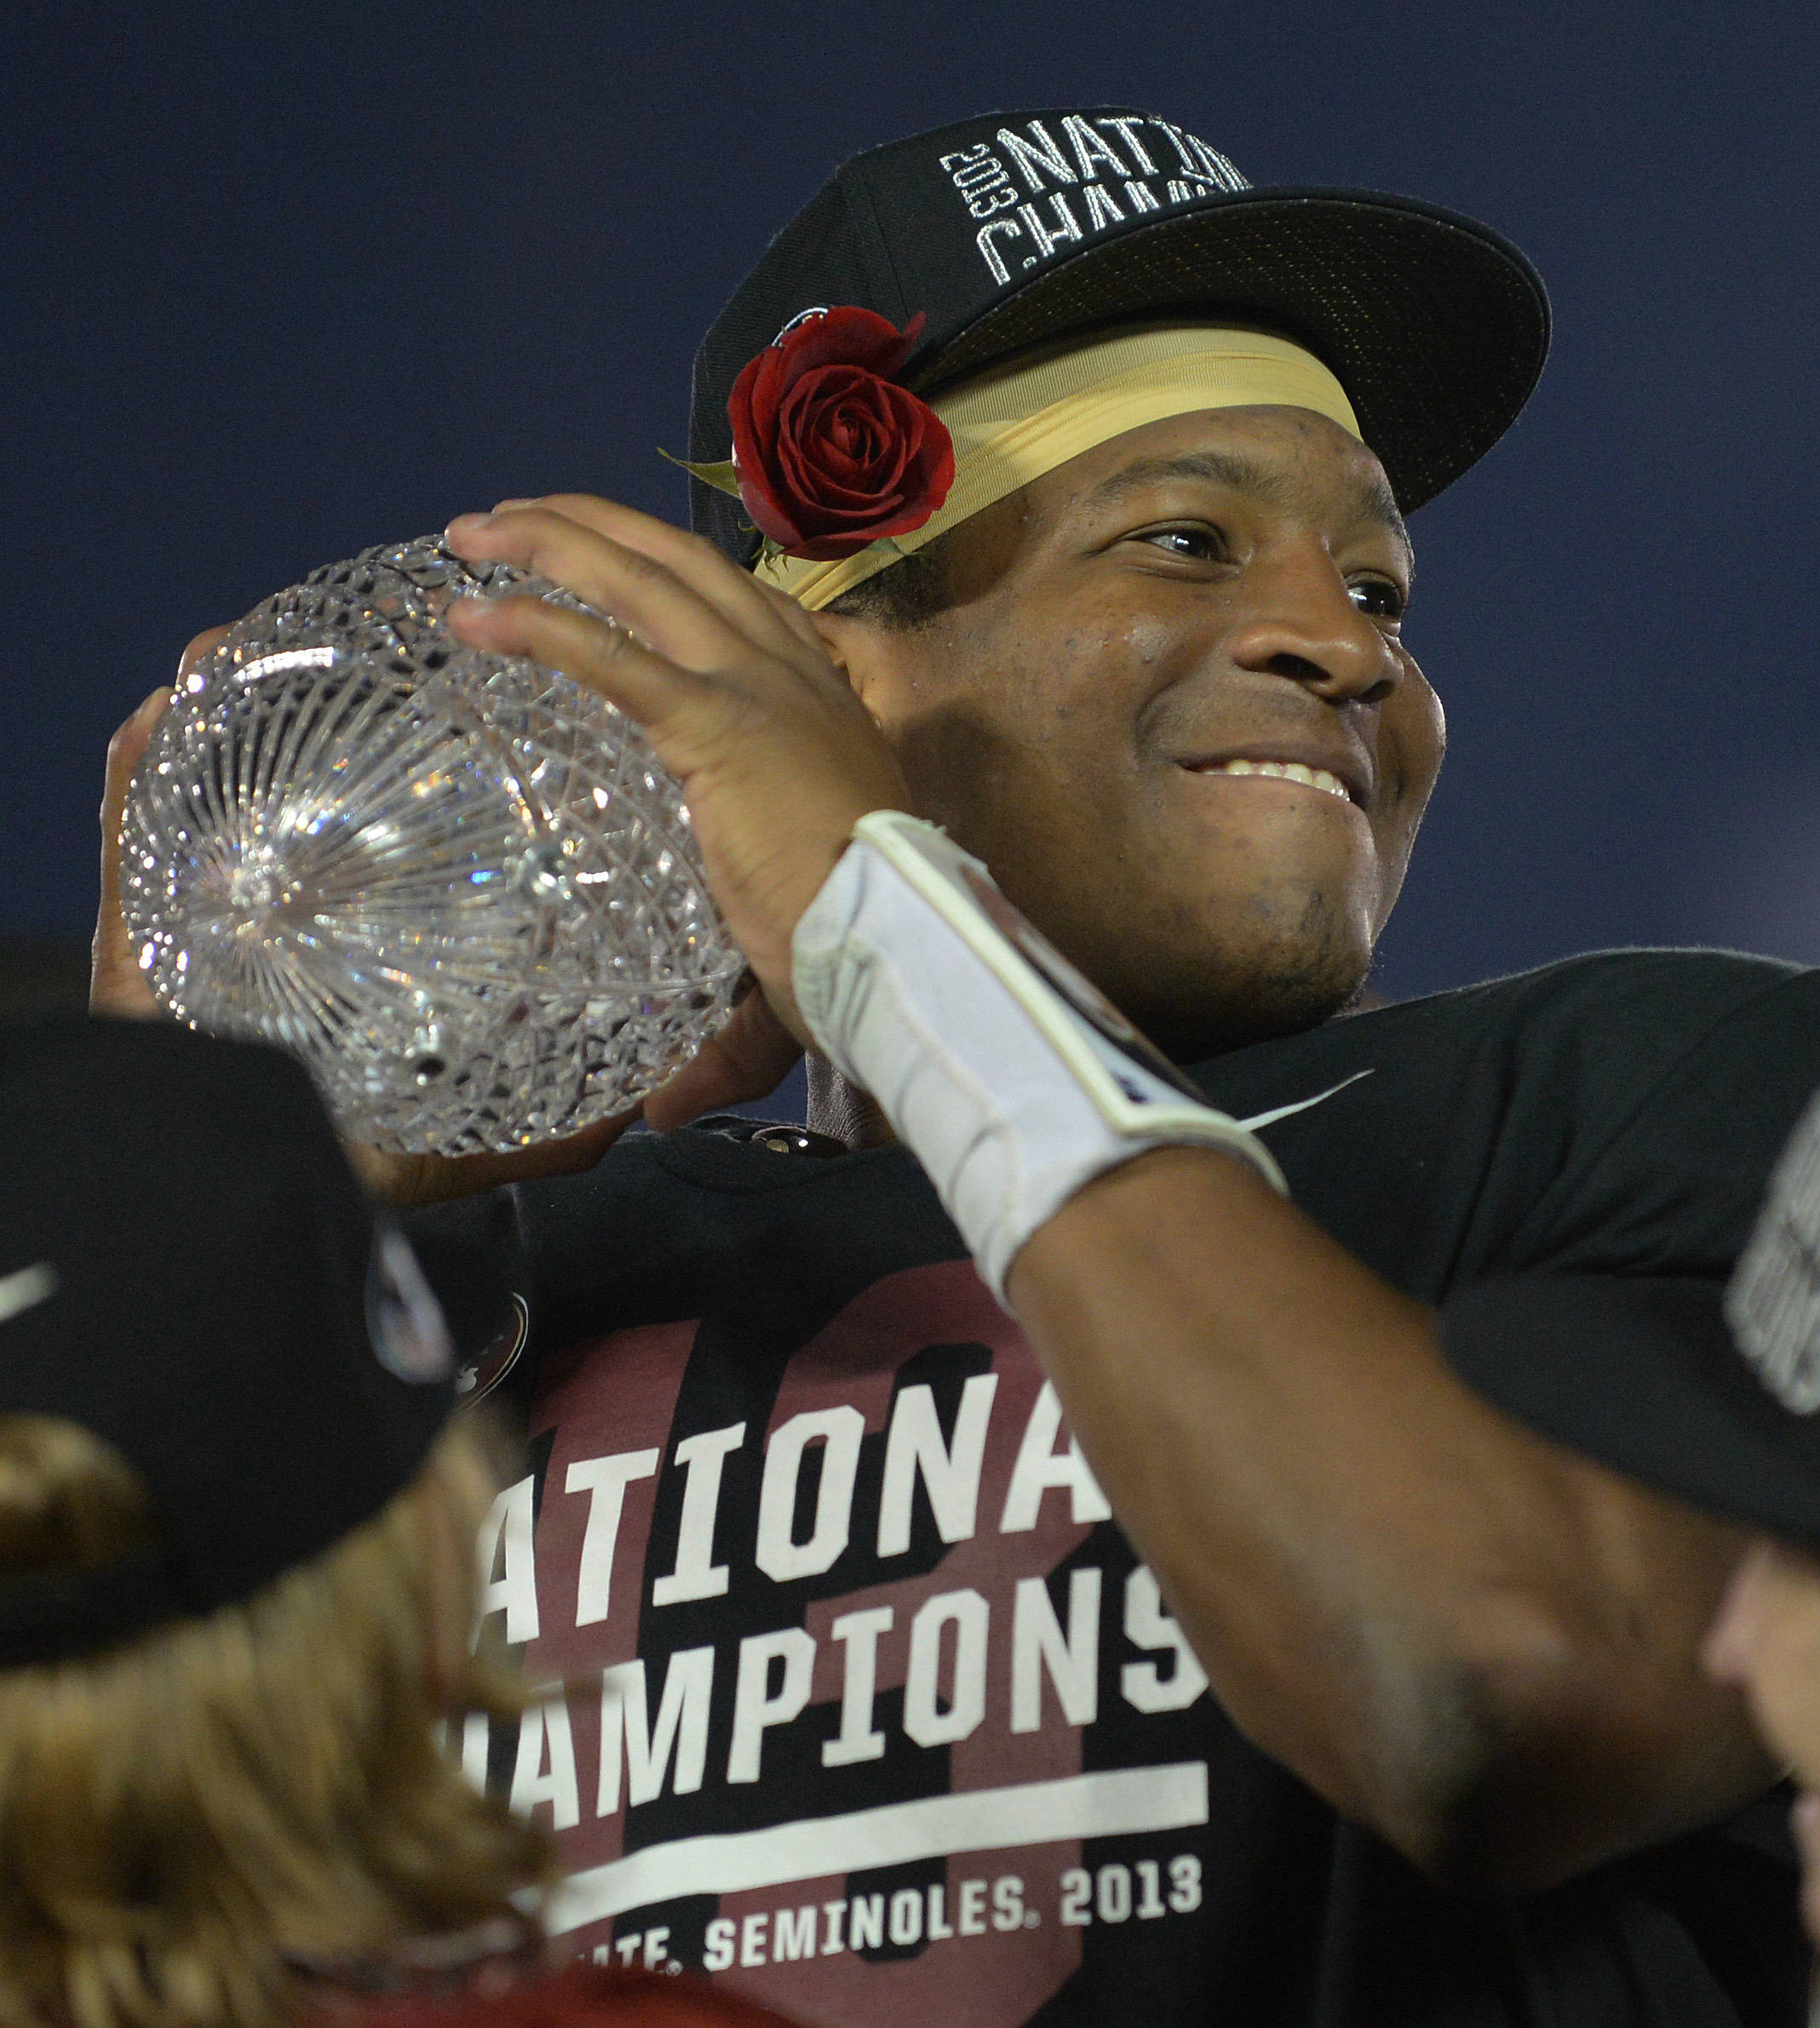 Jameis Winston is first player to ever win title and Heisman, go undefeated and be on team that averaged 50 points per game